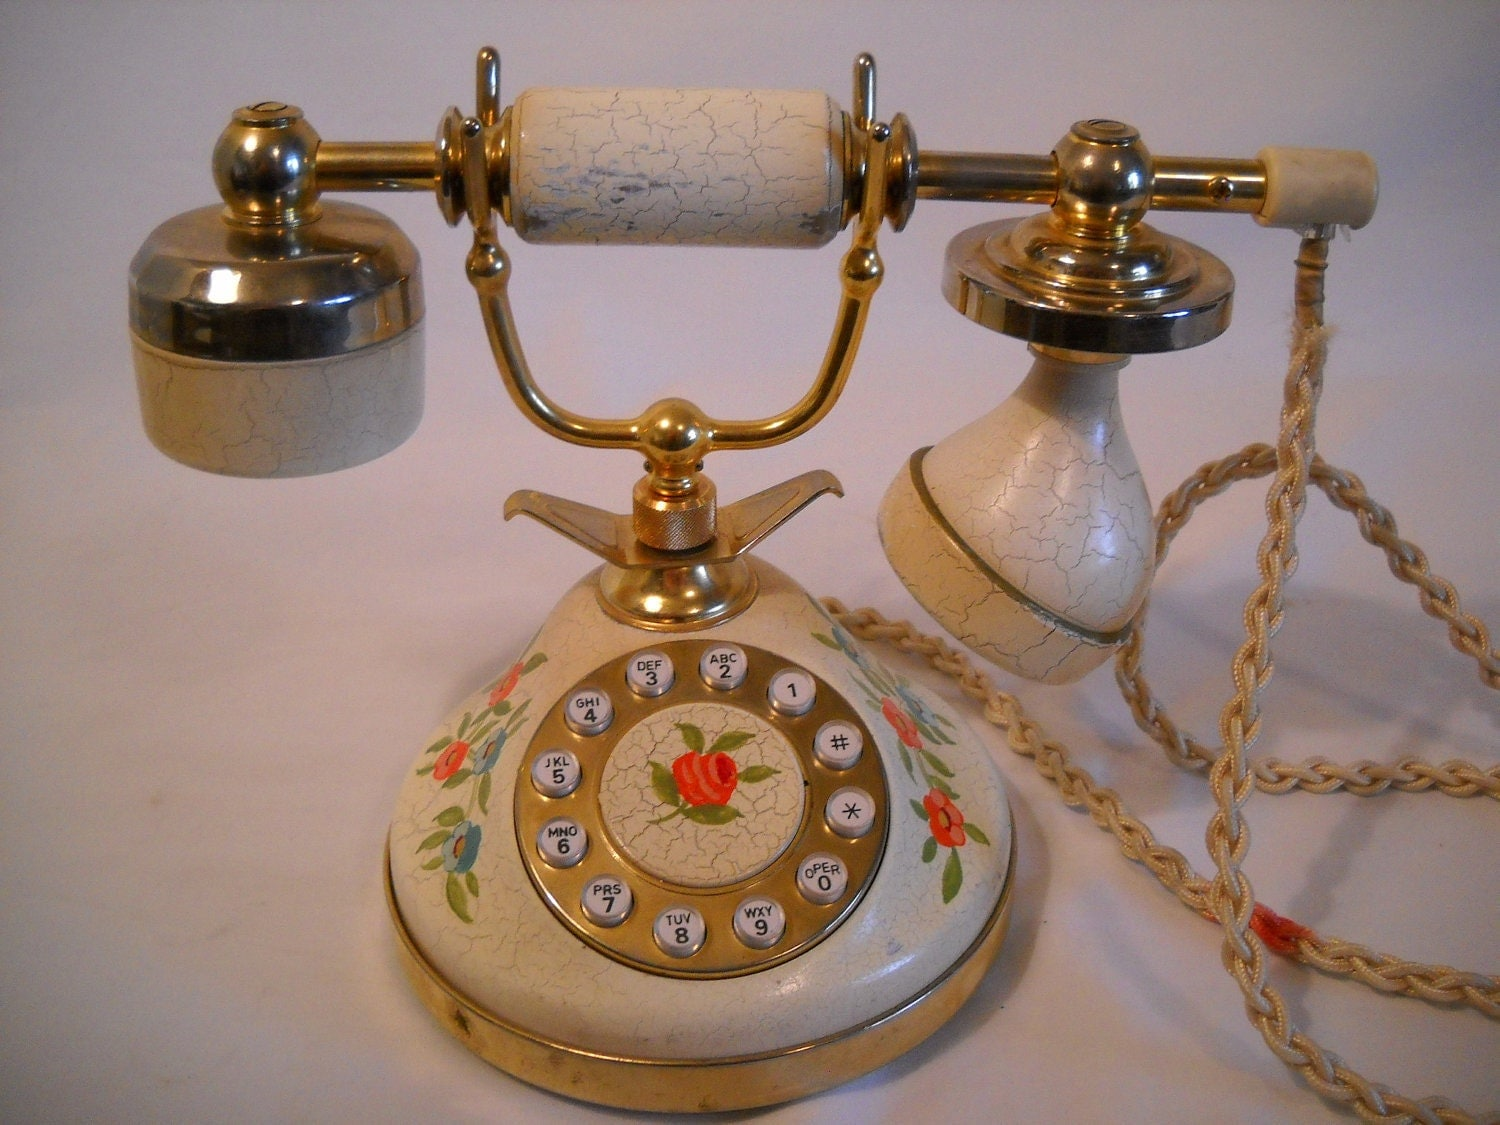 Vintage Victorian Style Telephone Telequest Gold Plated Made